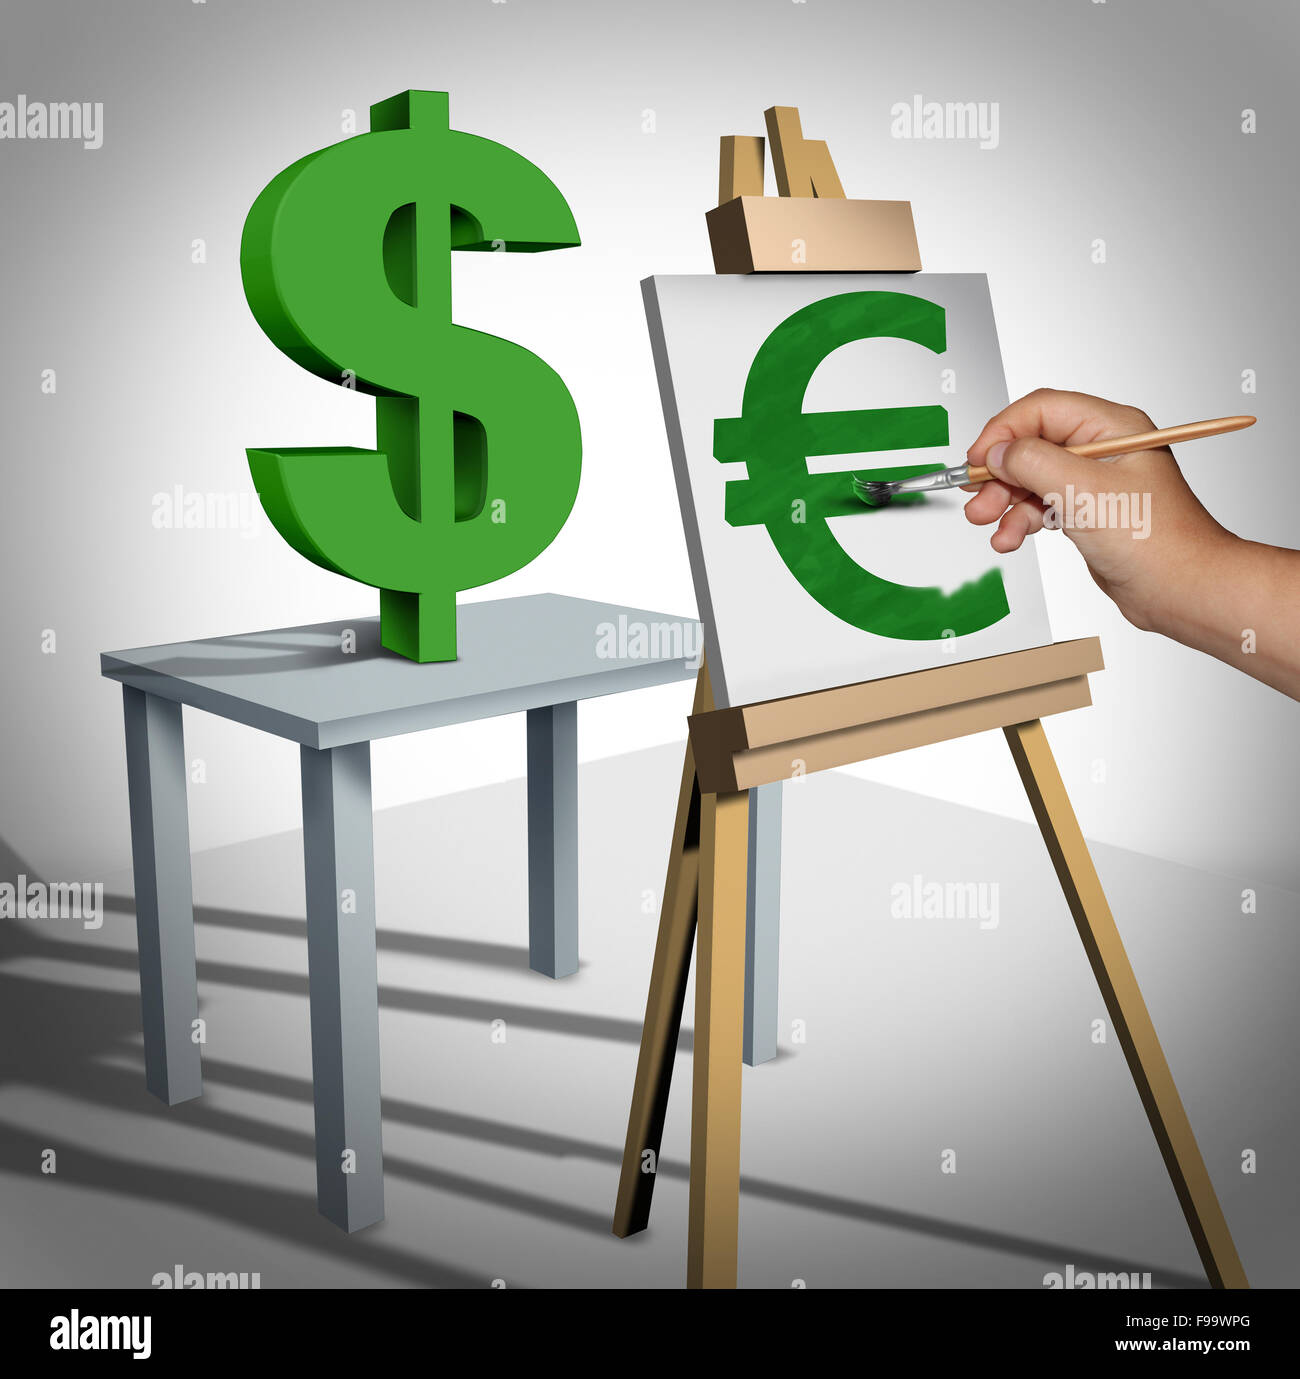 Currency conversion and money exchange financial business concept as a three dimensional dollar sign being painted - Stock Image